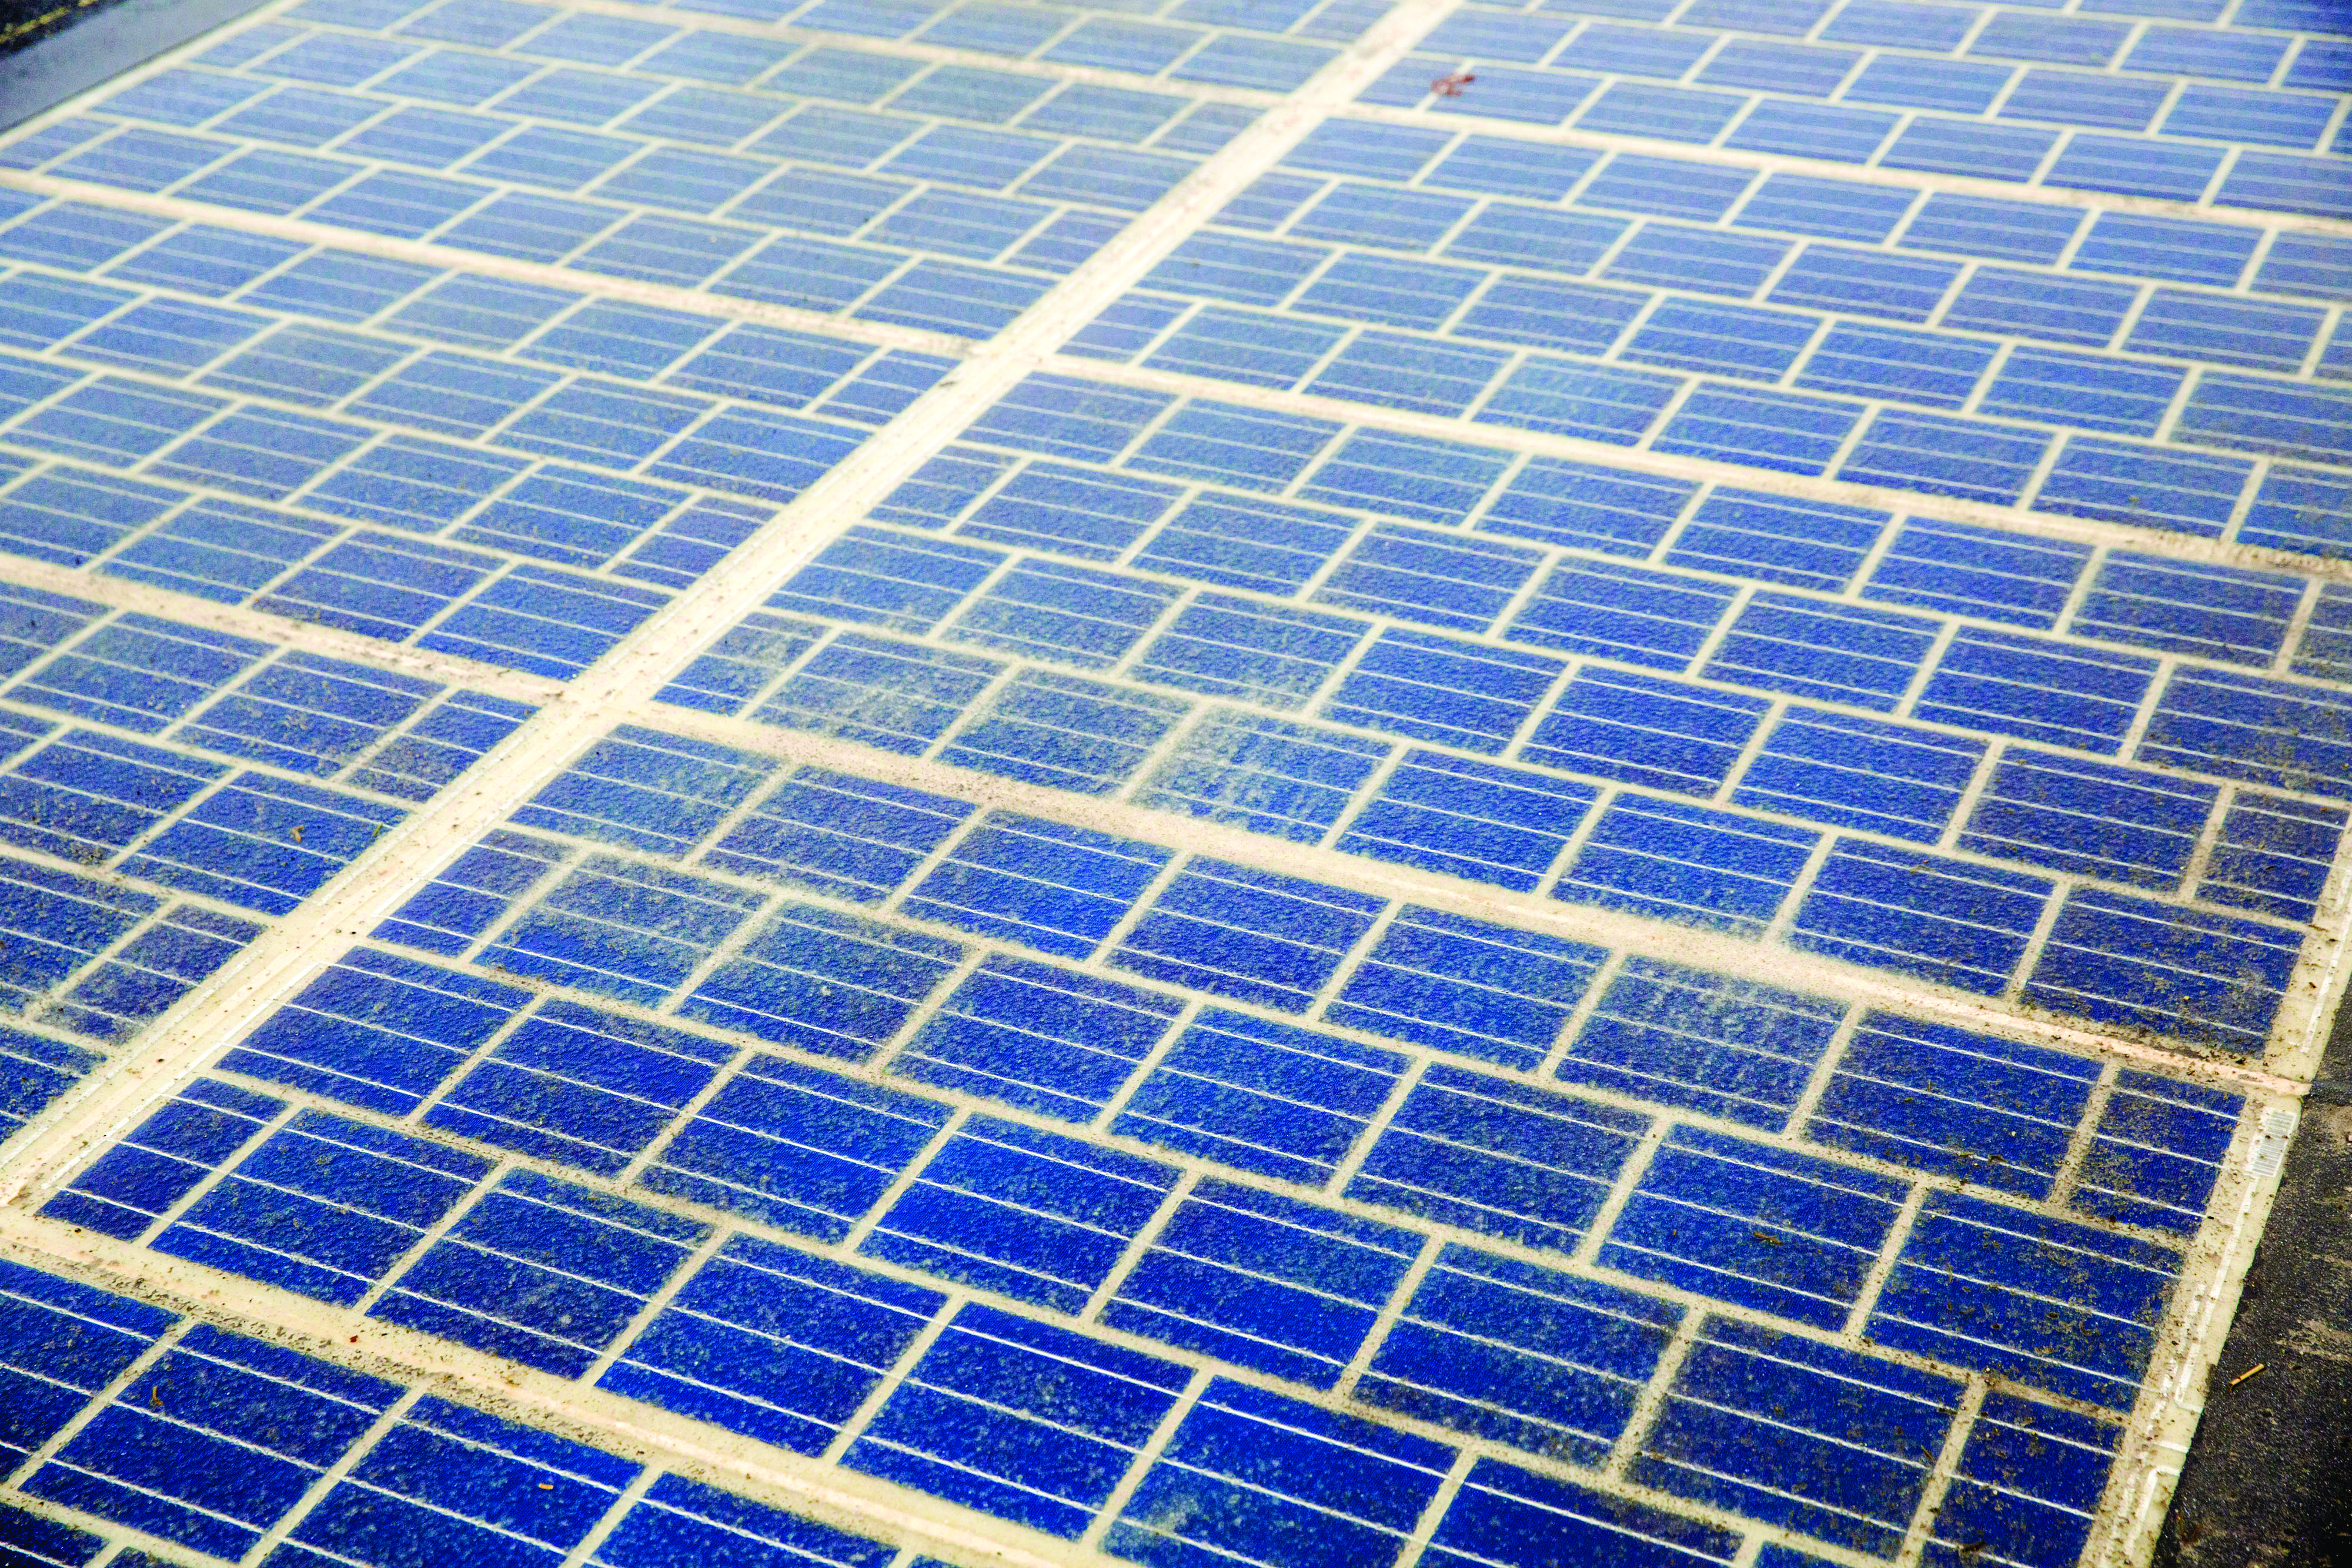 RAECO to tender for renewable energy projects by year end